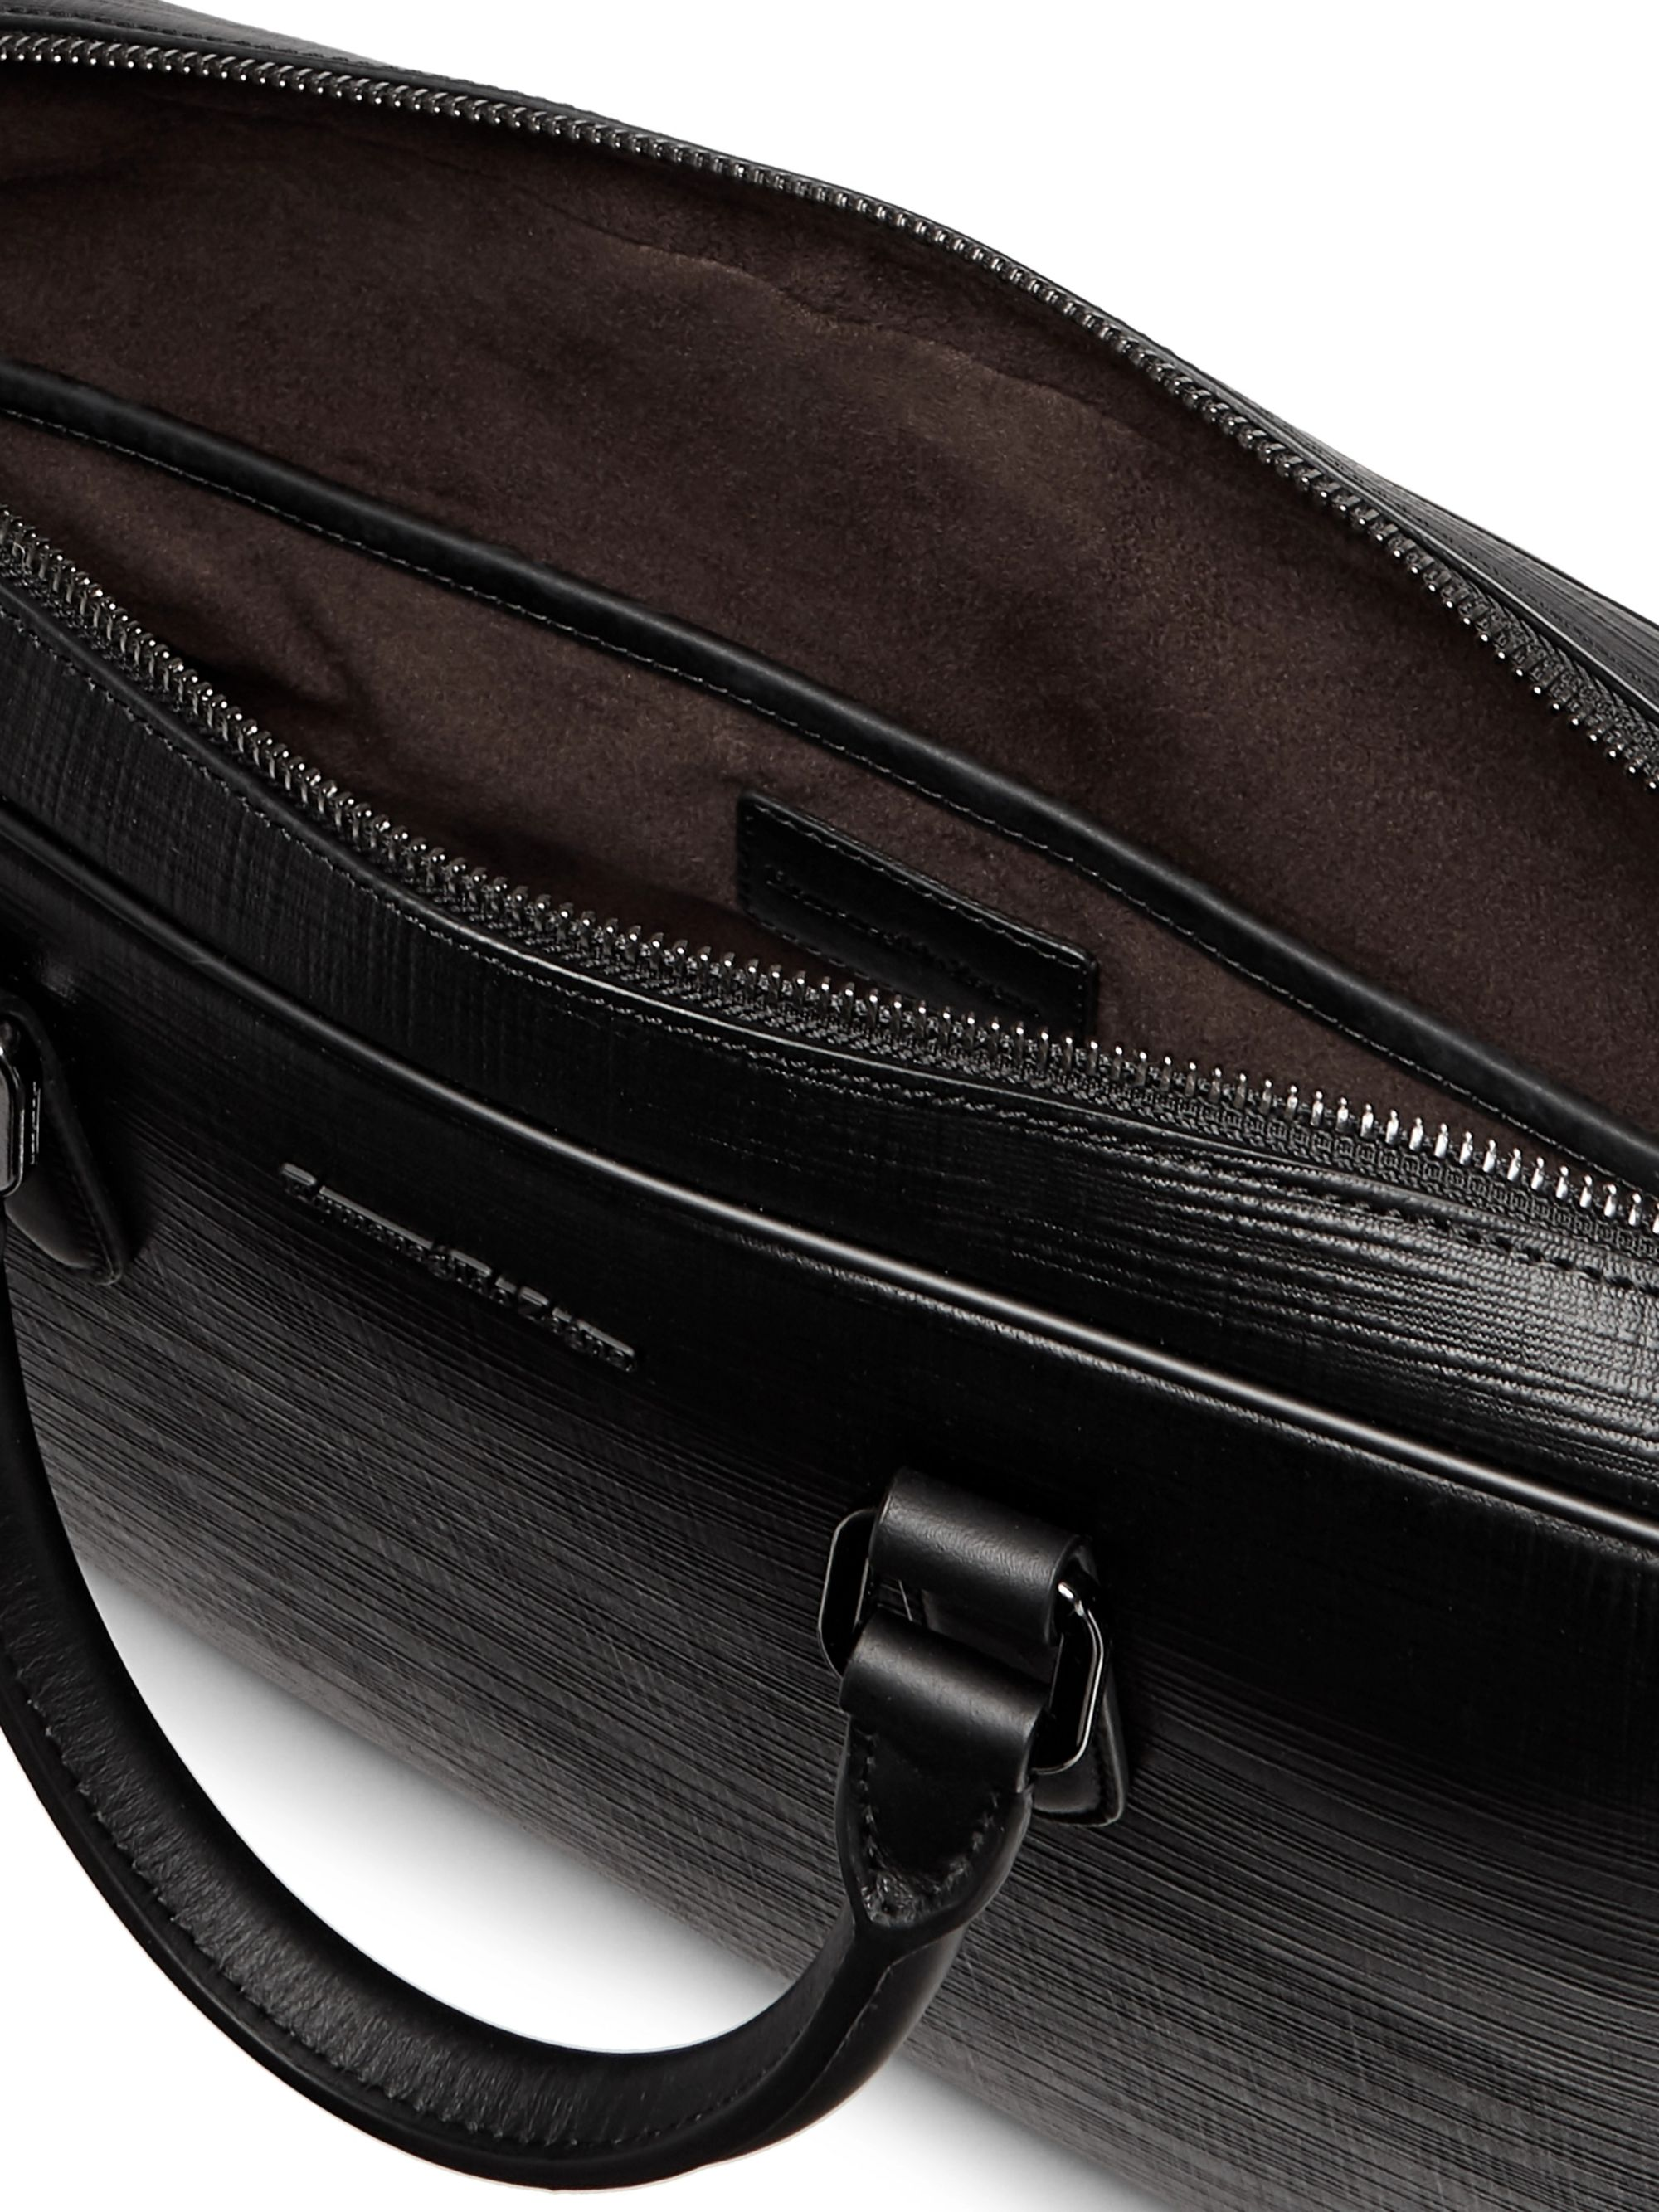 Ermenegildo Zegna Textured-Leather Briefcase